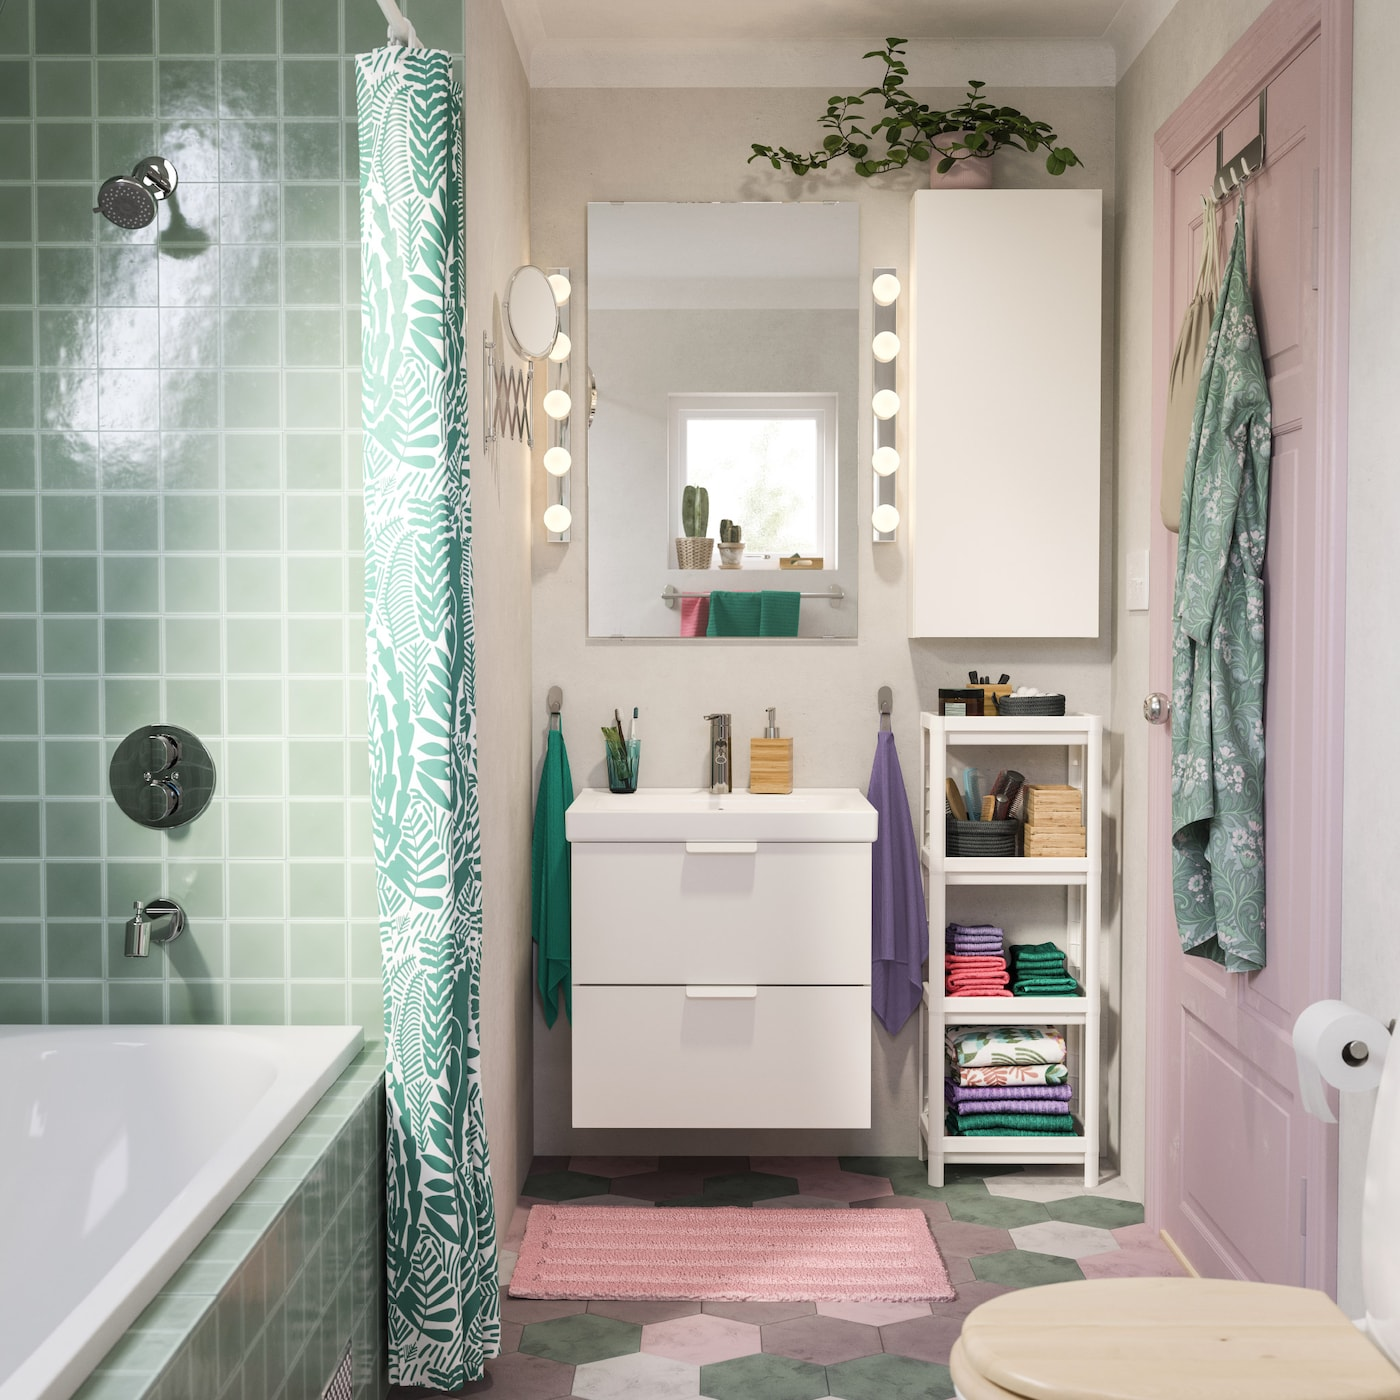 A pink and turquoise bathroom with wash-basin and wall cabinet in white, a pink bath mat and a shower curtain in turquoise.